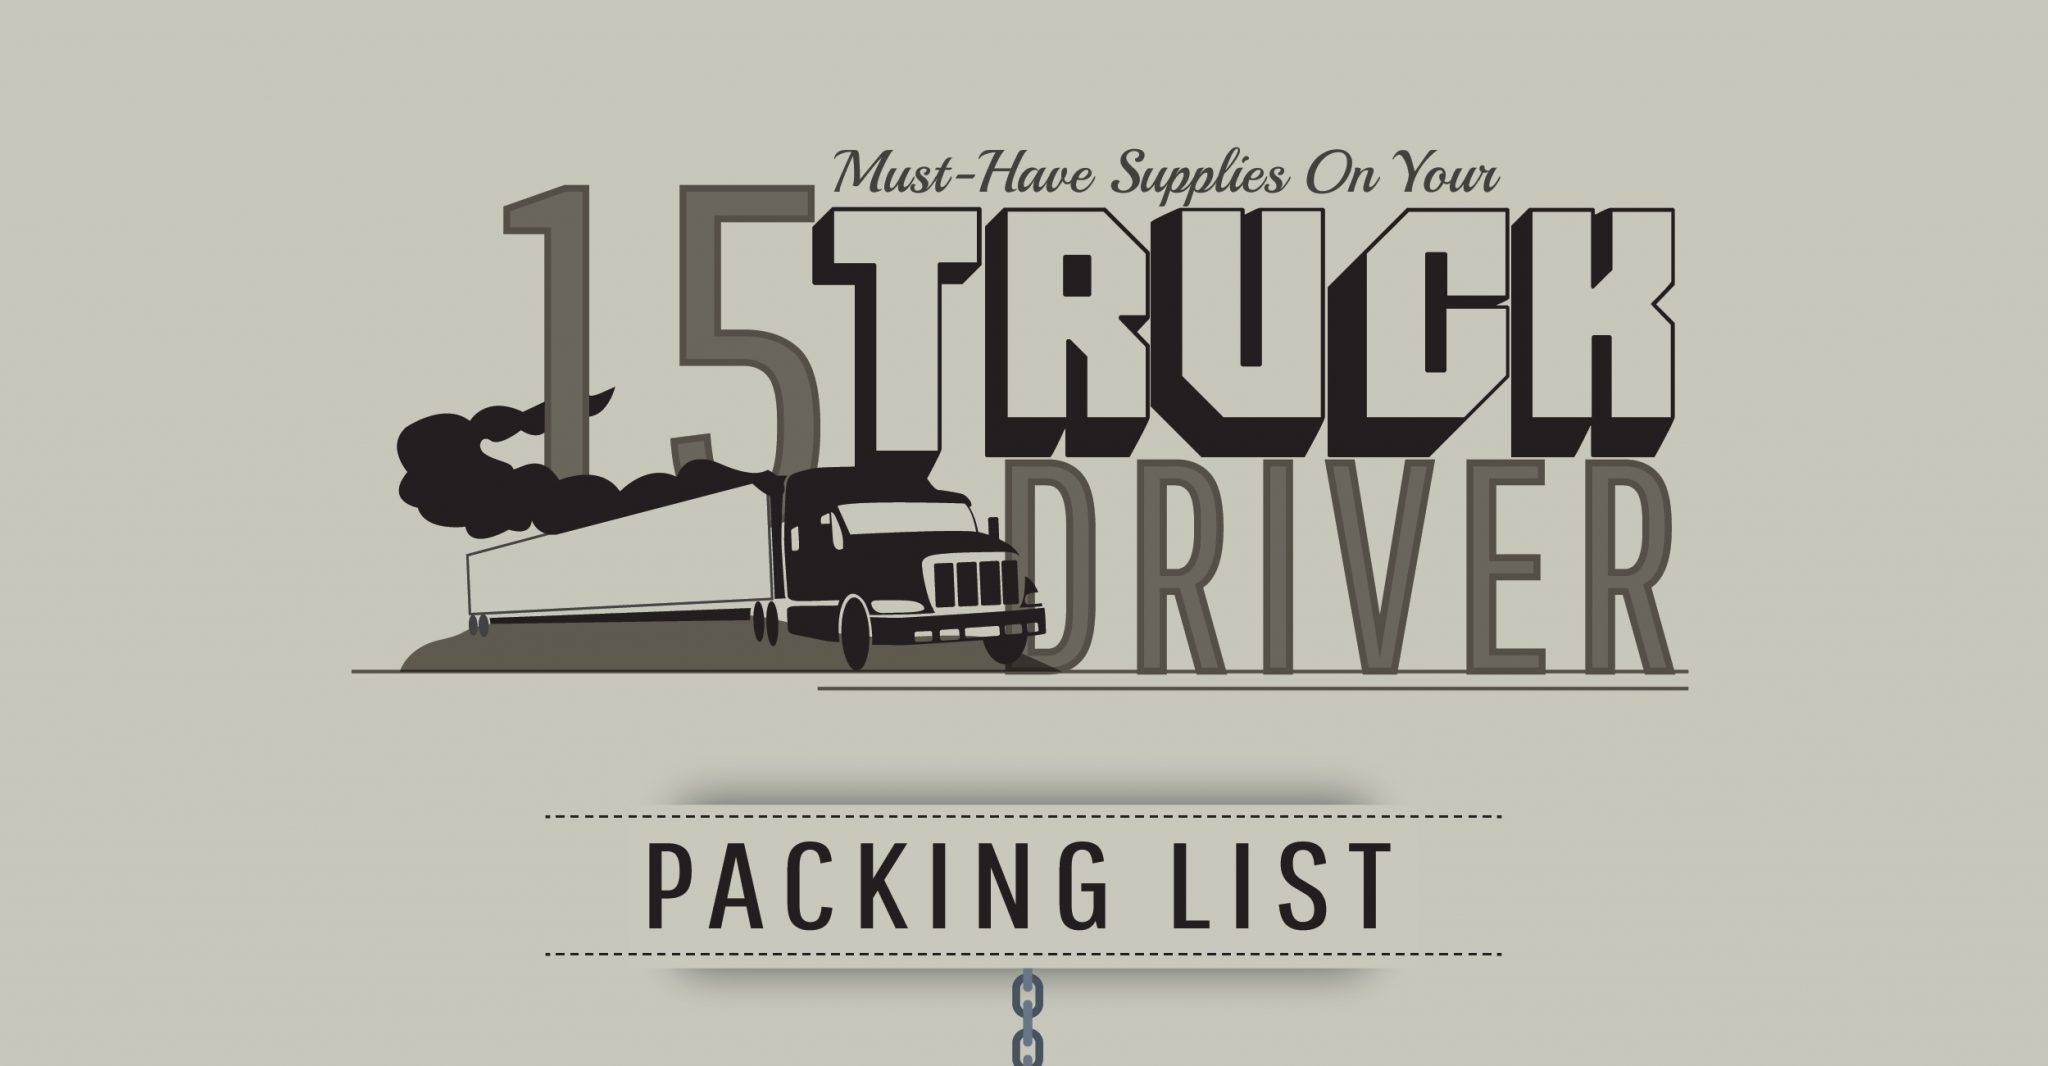 INFOGRAPHIC: 15 Must-Have Supplies On Your Truck Driver Packing List